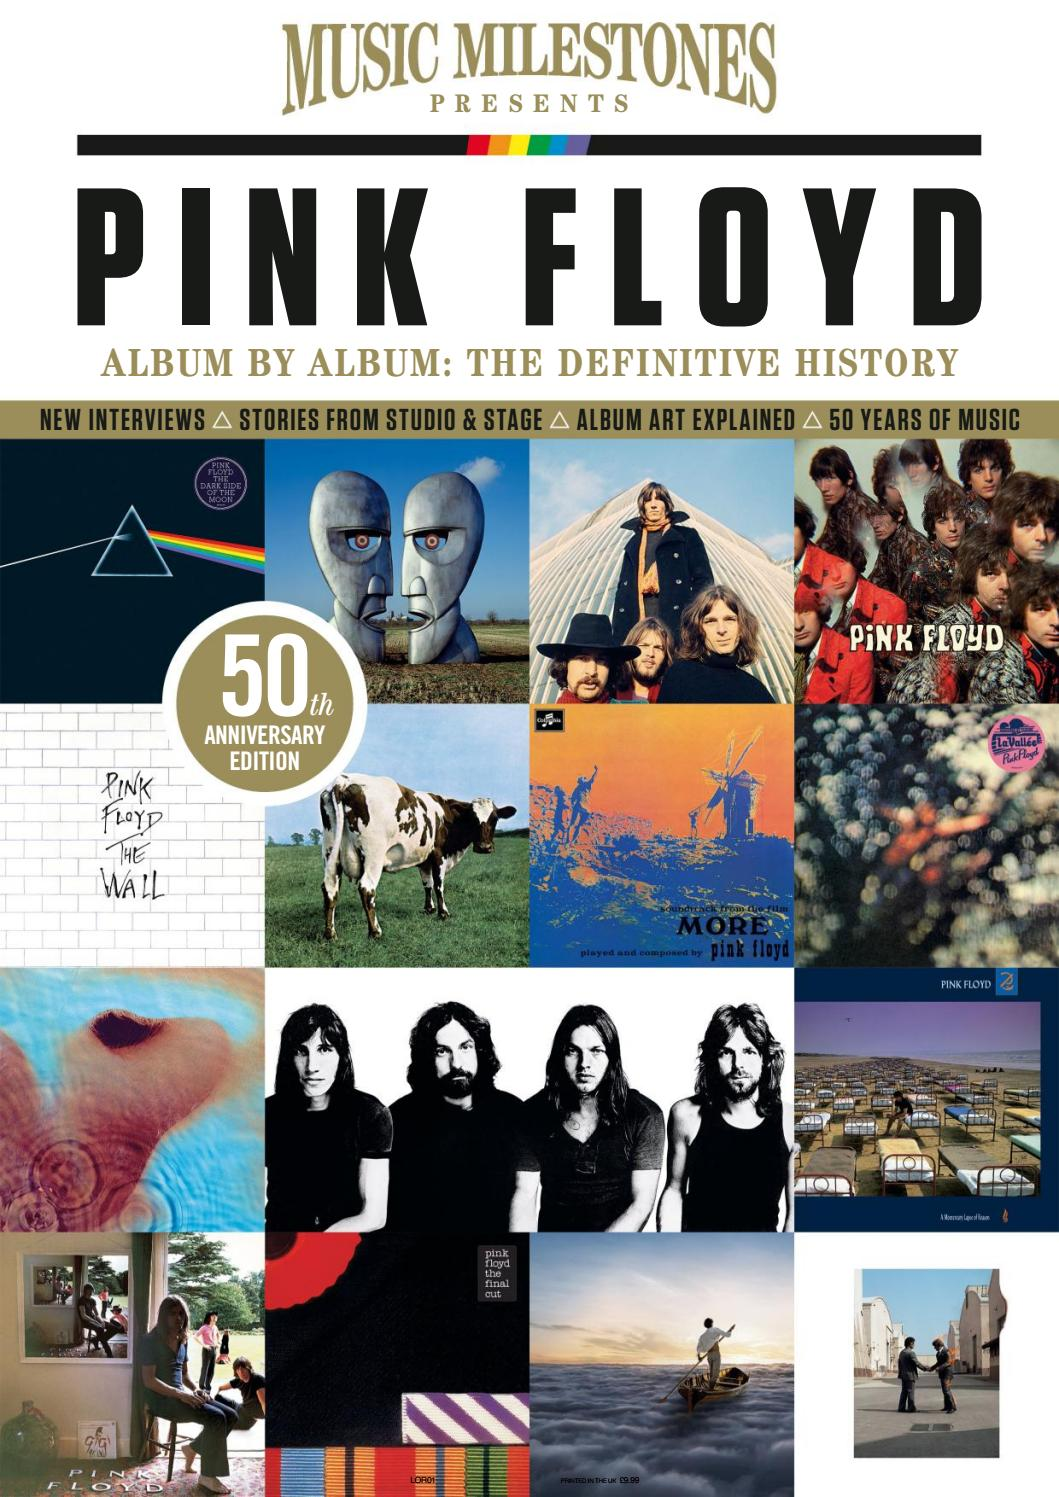 Music milestones pink floyd 50th anniversary edition 2017 by Miguel Minaya  Isla - issuu f21e5cd86